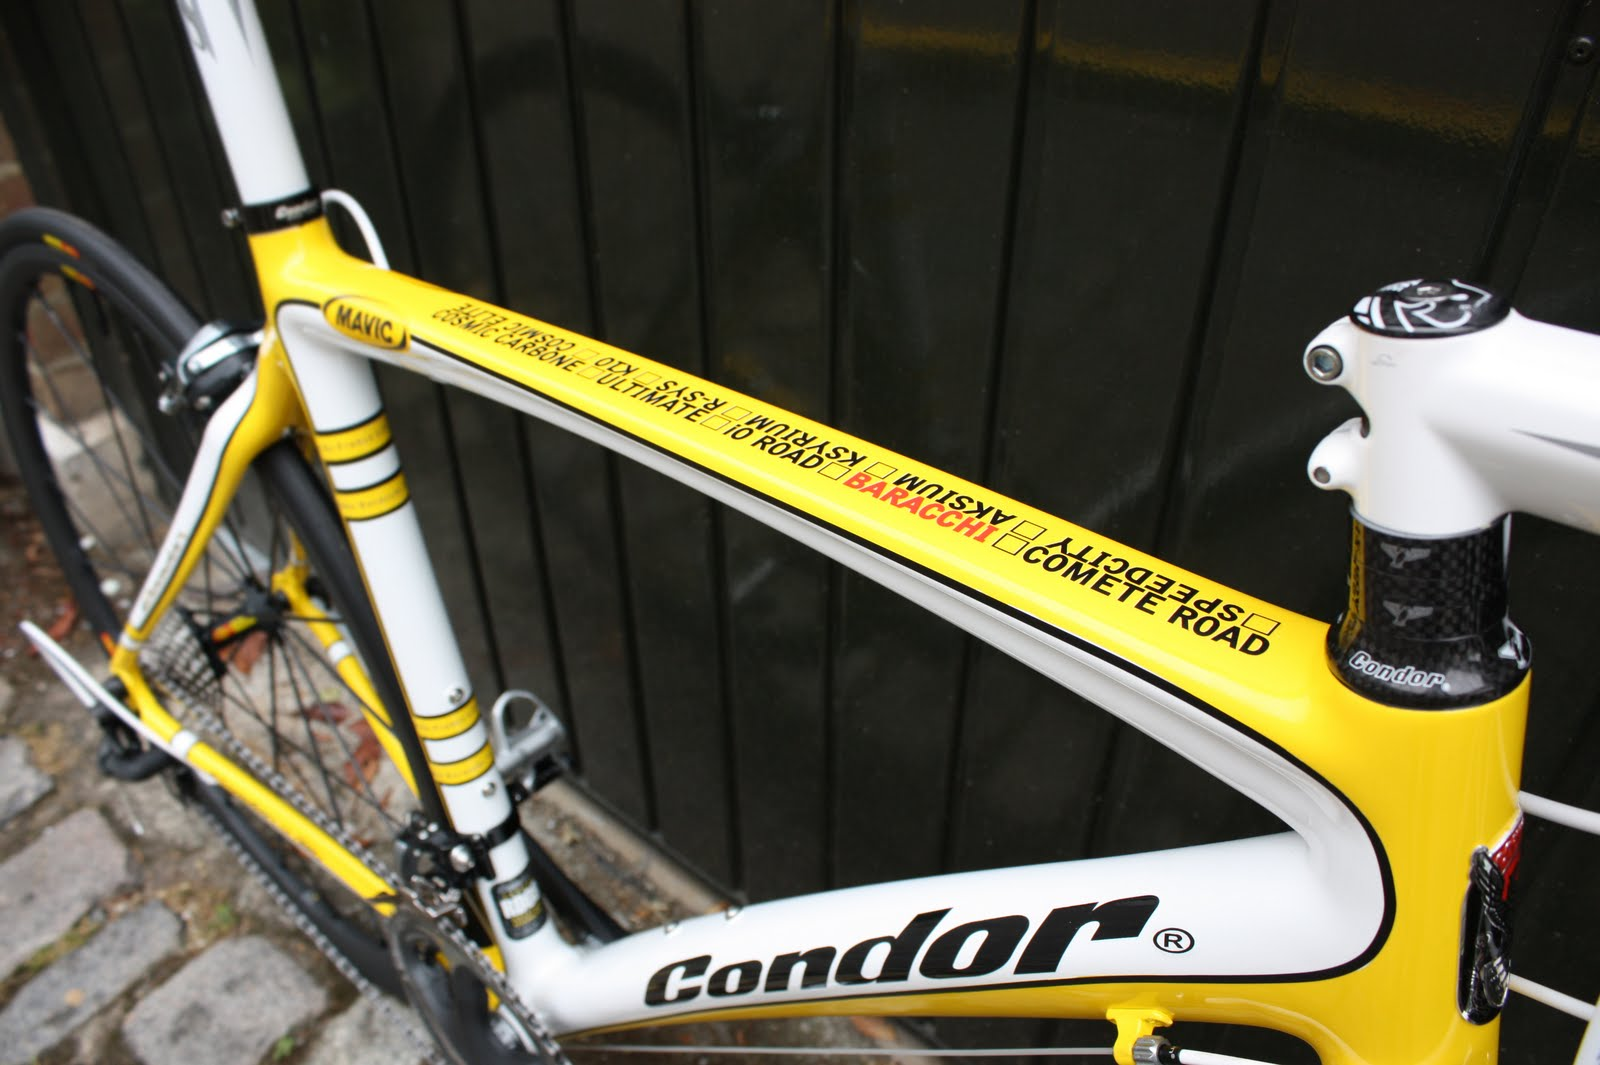 Condor Mavic Baracchi Top Tube